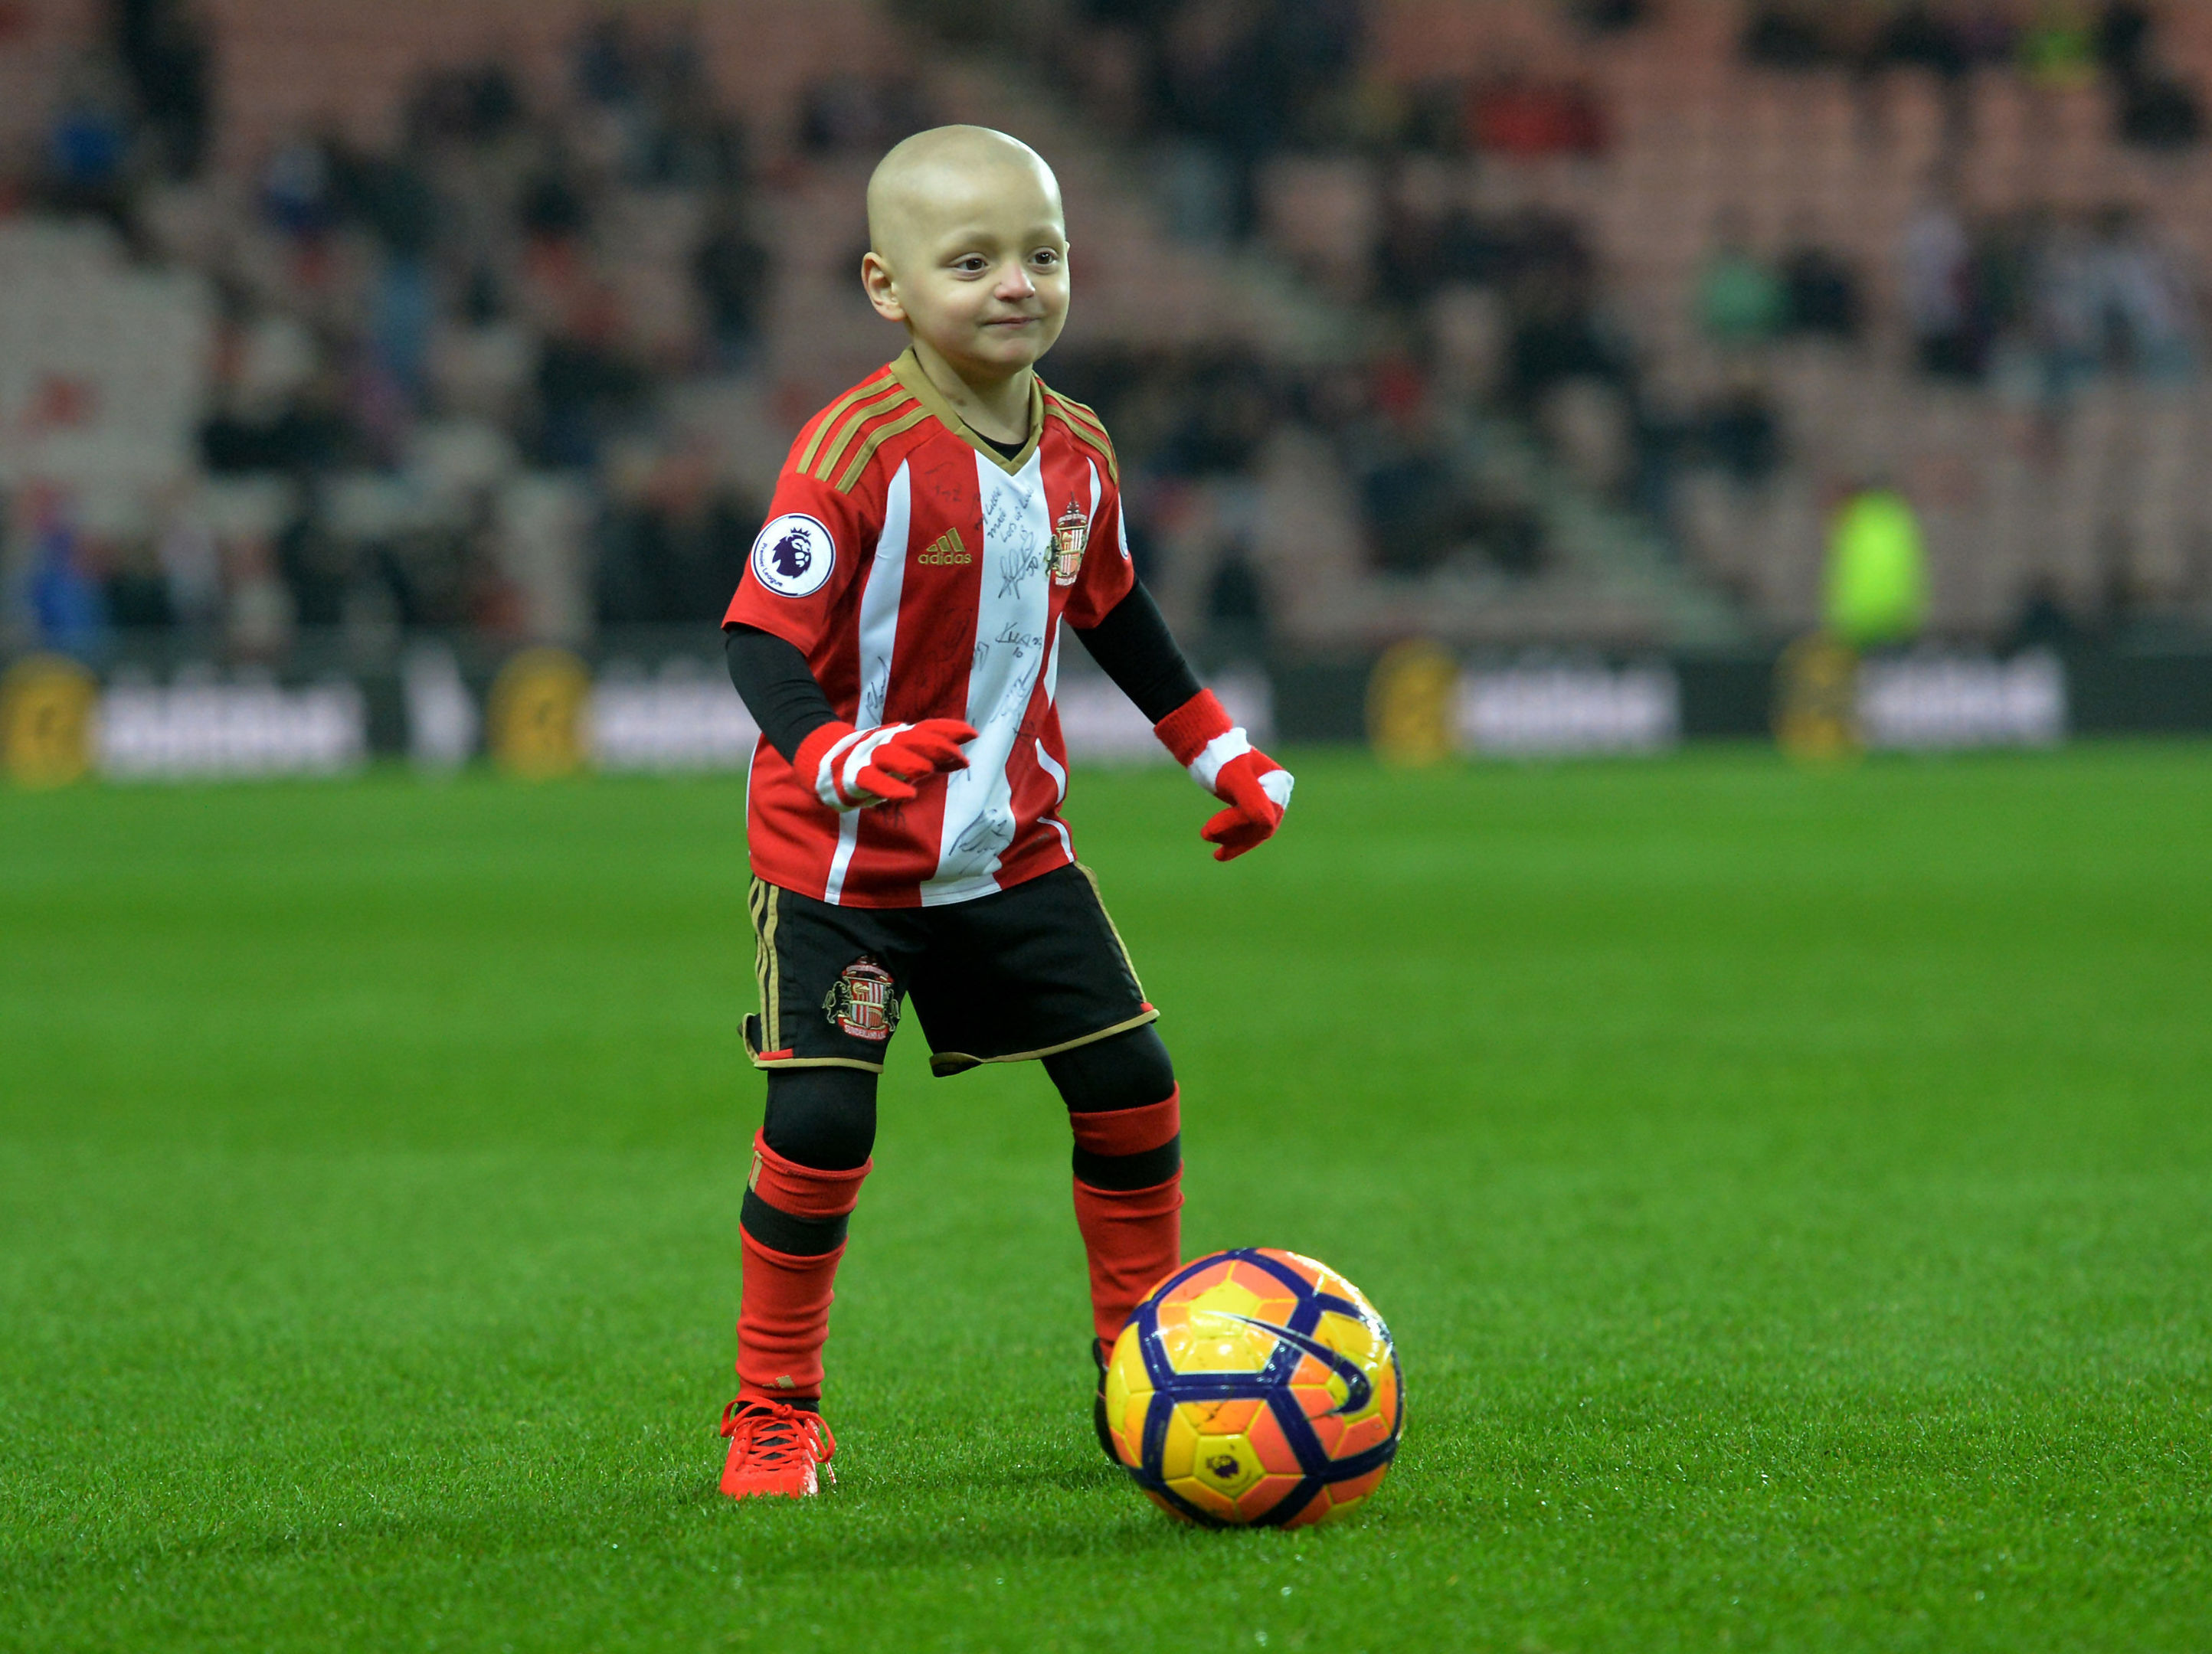 Bradley Lowery, the six-year-old football mascot who touched the nation's heart with his battle against the childhood cancer neuroblastoma, has died, his family said. (Anna Gowthorpe/PA Wire)